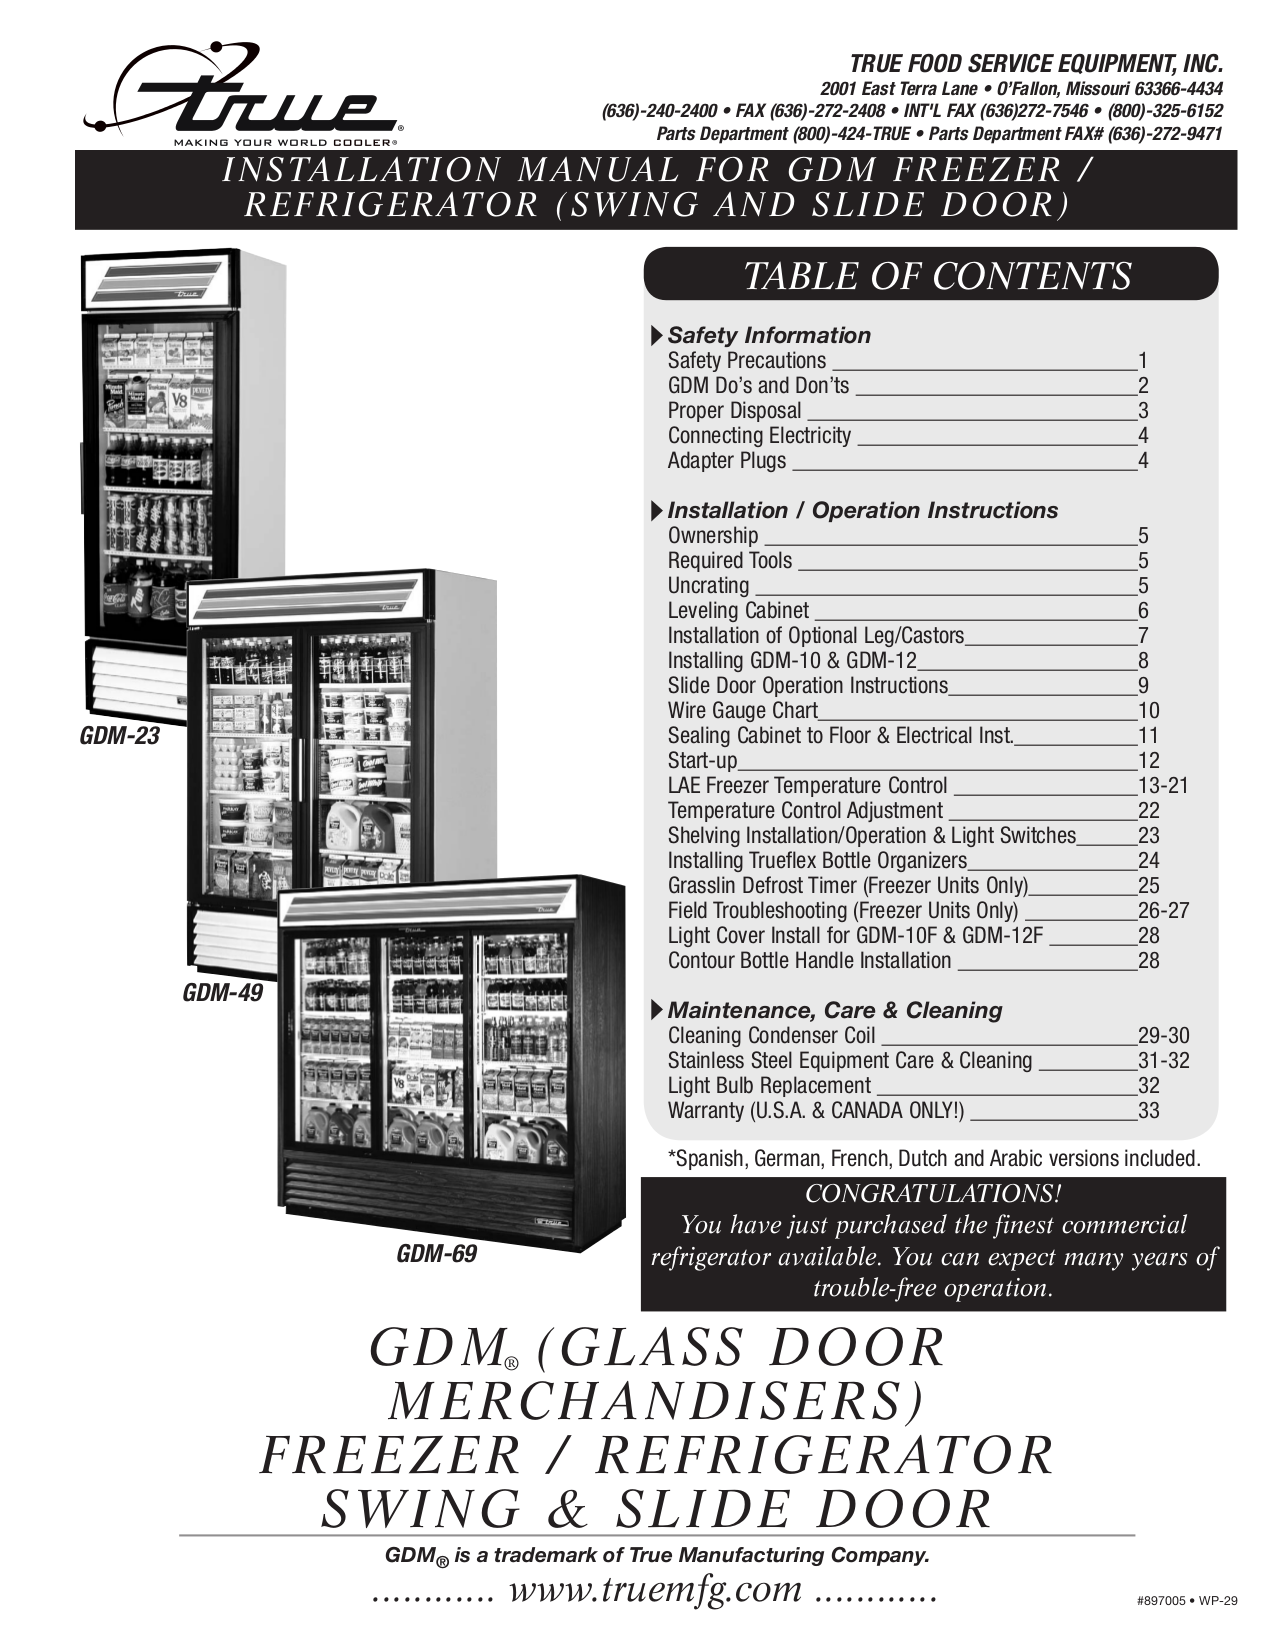 GDM Freezer_Refrigerator.pdf 0 download free pdf for true gdm 26 refrigerator manual true gdm 23 wiring diagram at bayanpartner.co